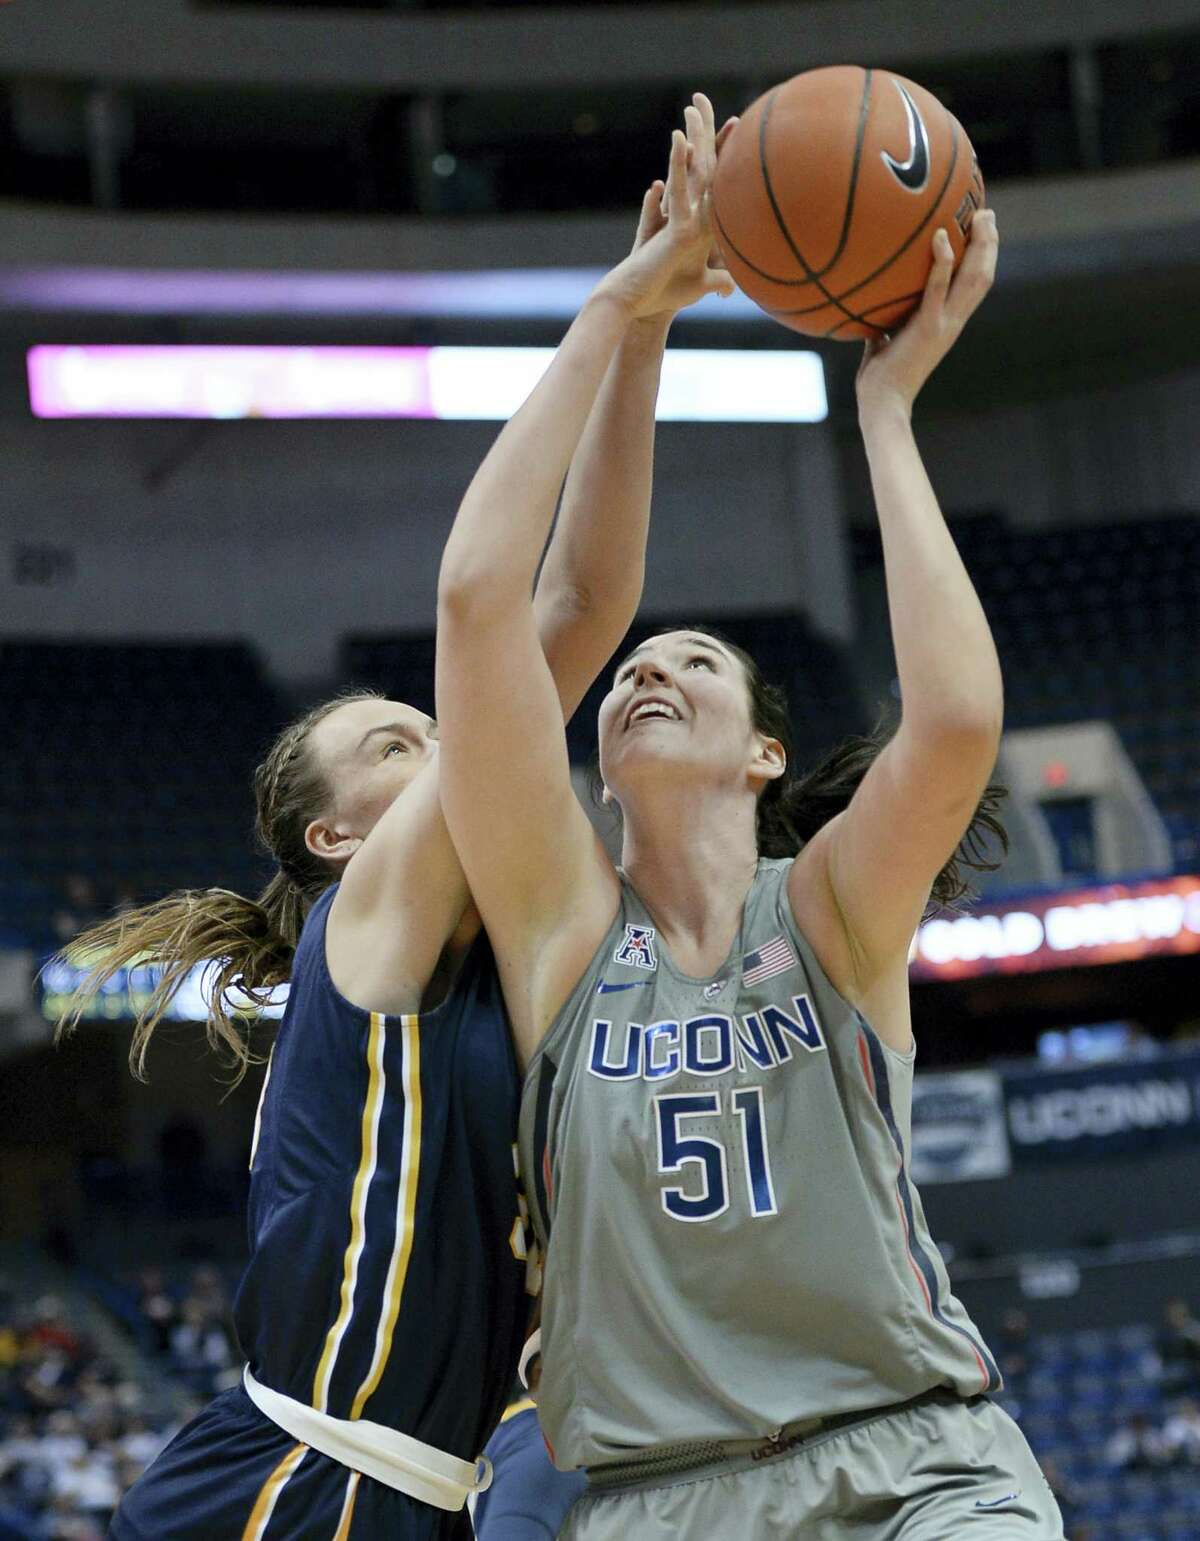 UConn's Natalie Butler shoots as Pace's Kirsten Dodge, left, defends in the second half on Sunday.